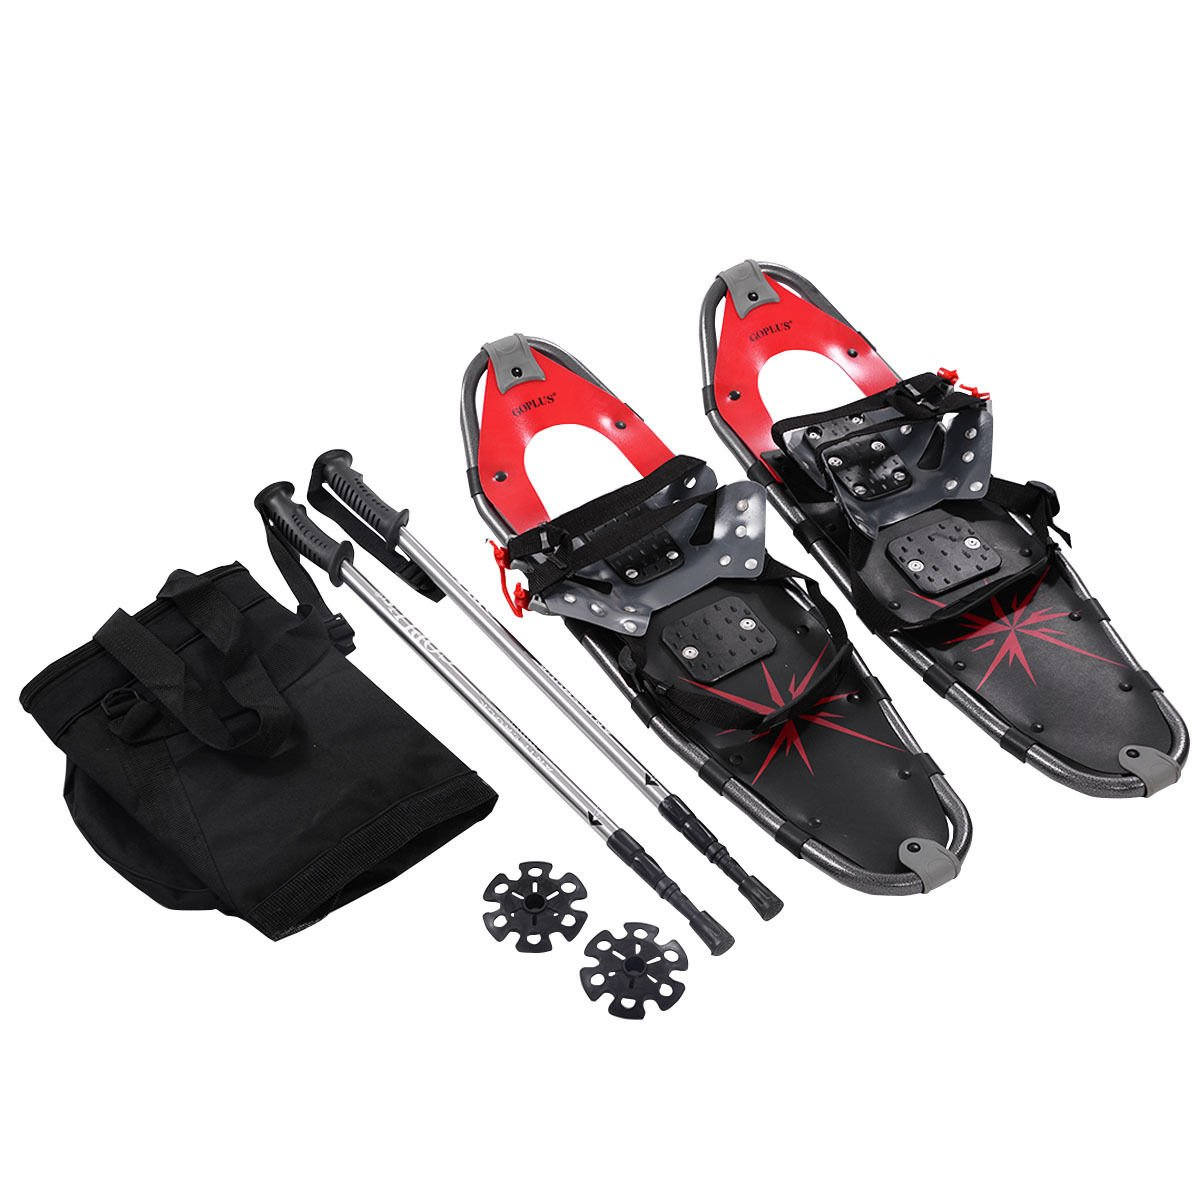 Goplus Snowshoes All Terrain Sports with Anti-Shock Adjustable Poles & Carrying Bag for Adults Snow Shoes 27'' Red by Goplus